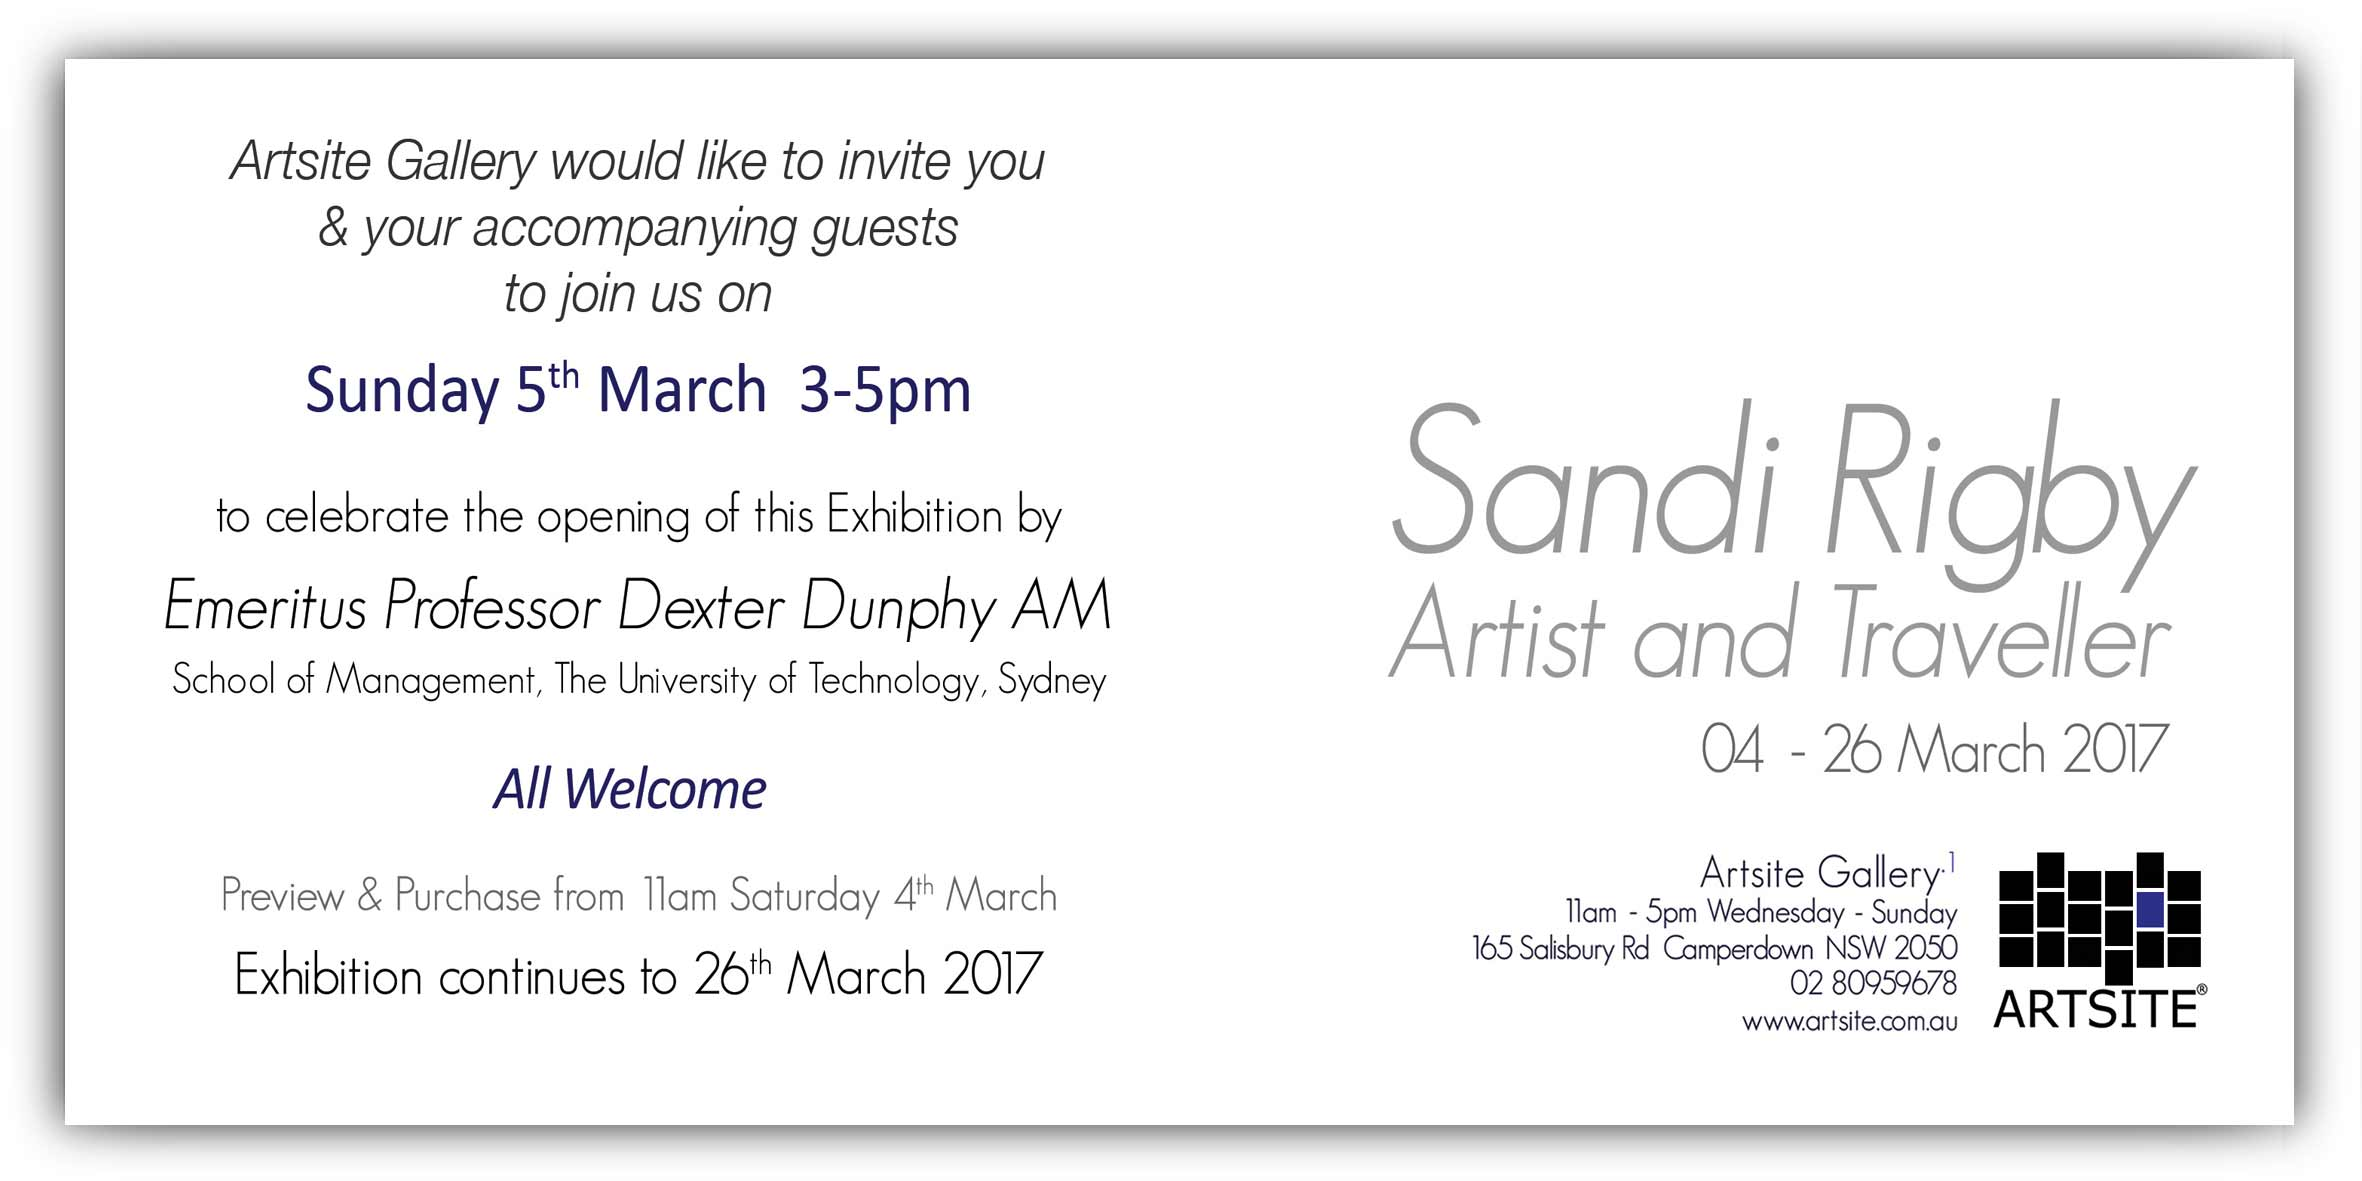 Sandi Rigby: Artist and Traveller. Solo Exhibition Gallery_1, Artsite Gallery 04 - 26 March 2017 opening event Sunday 5th March 3-5pm. All Welcome.